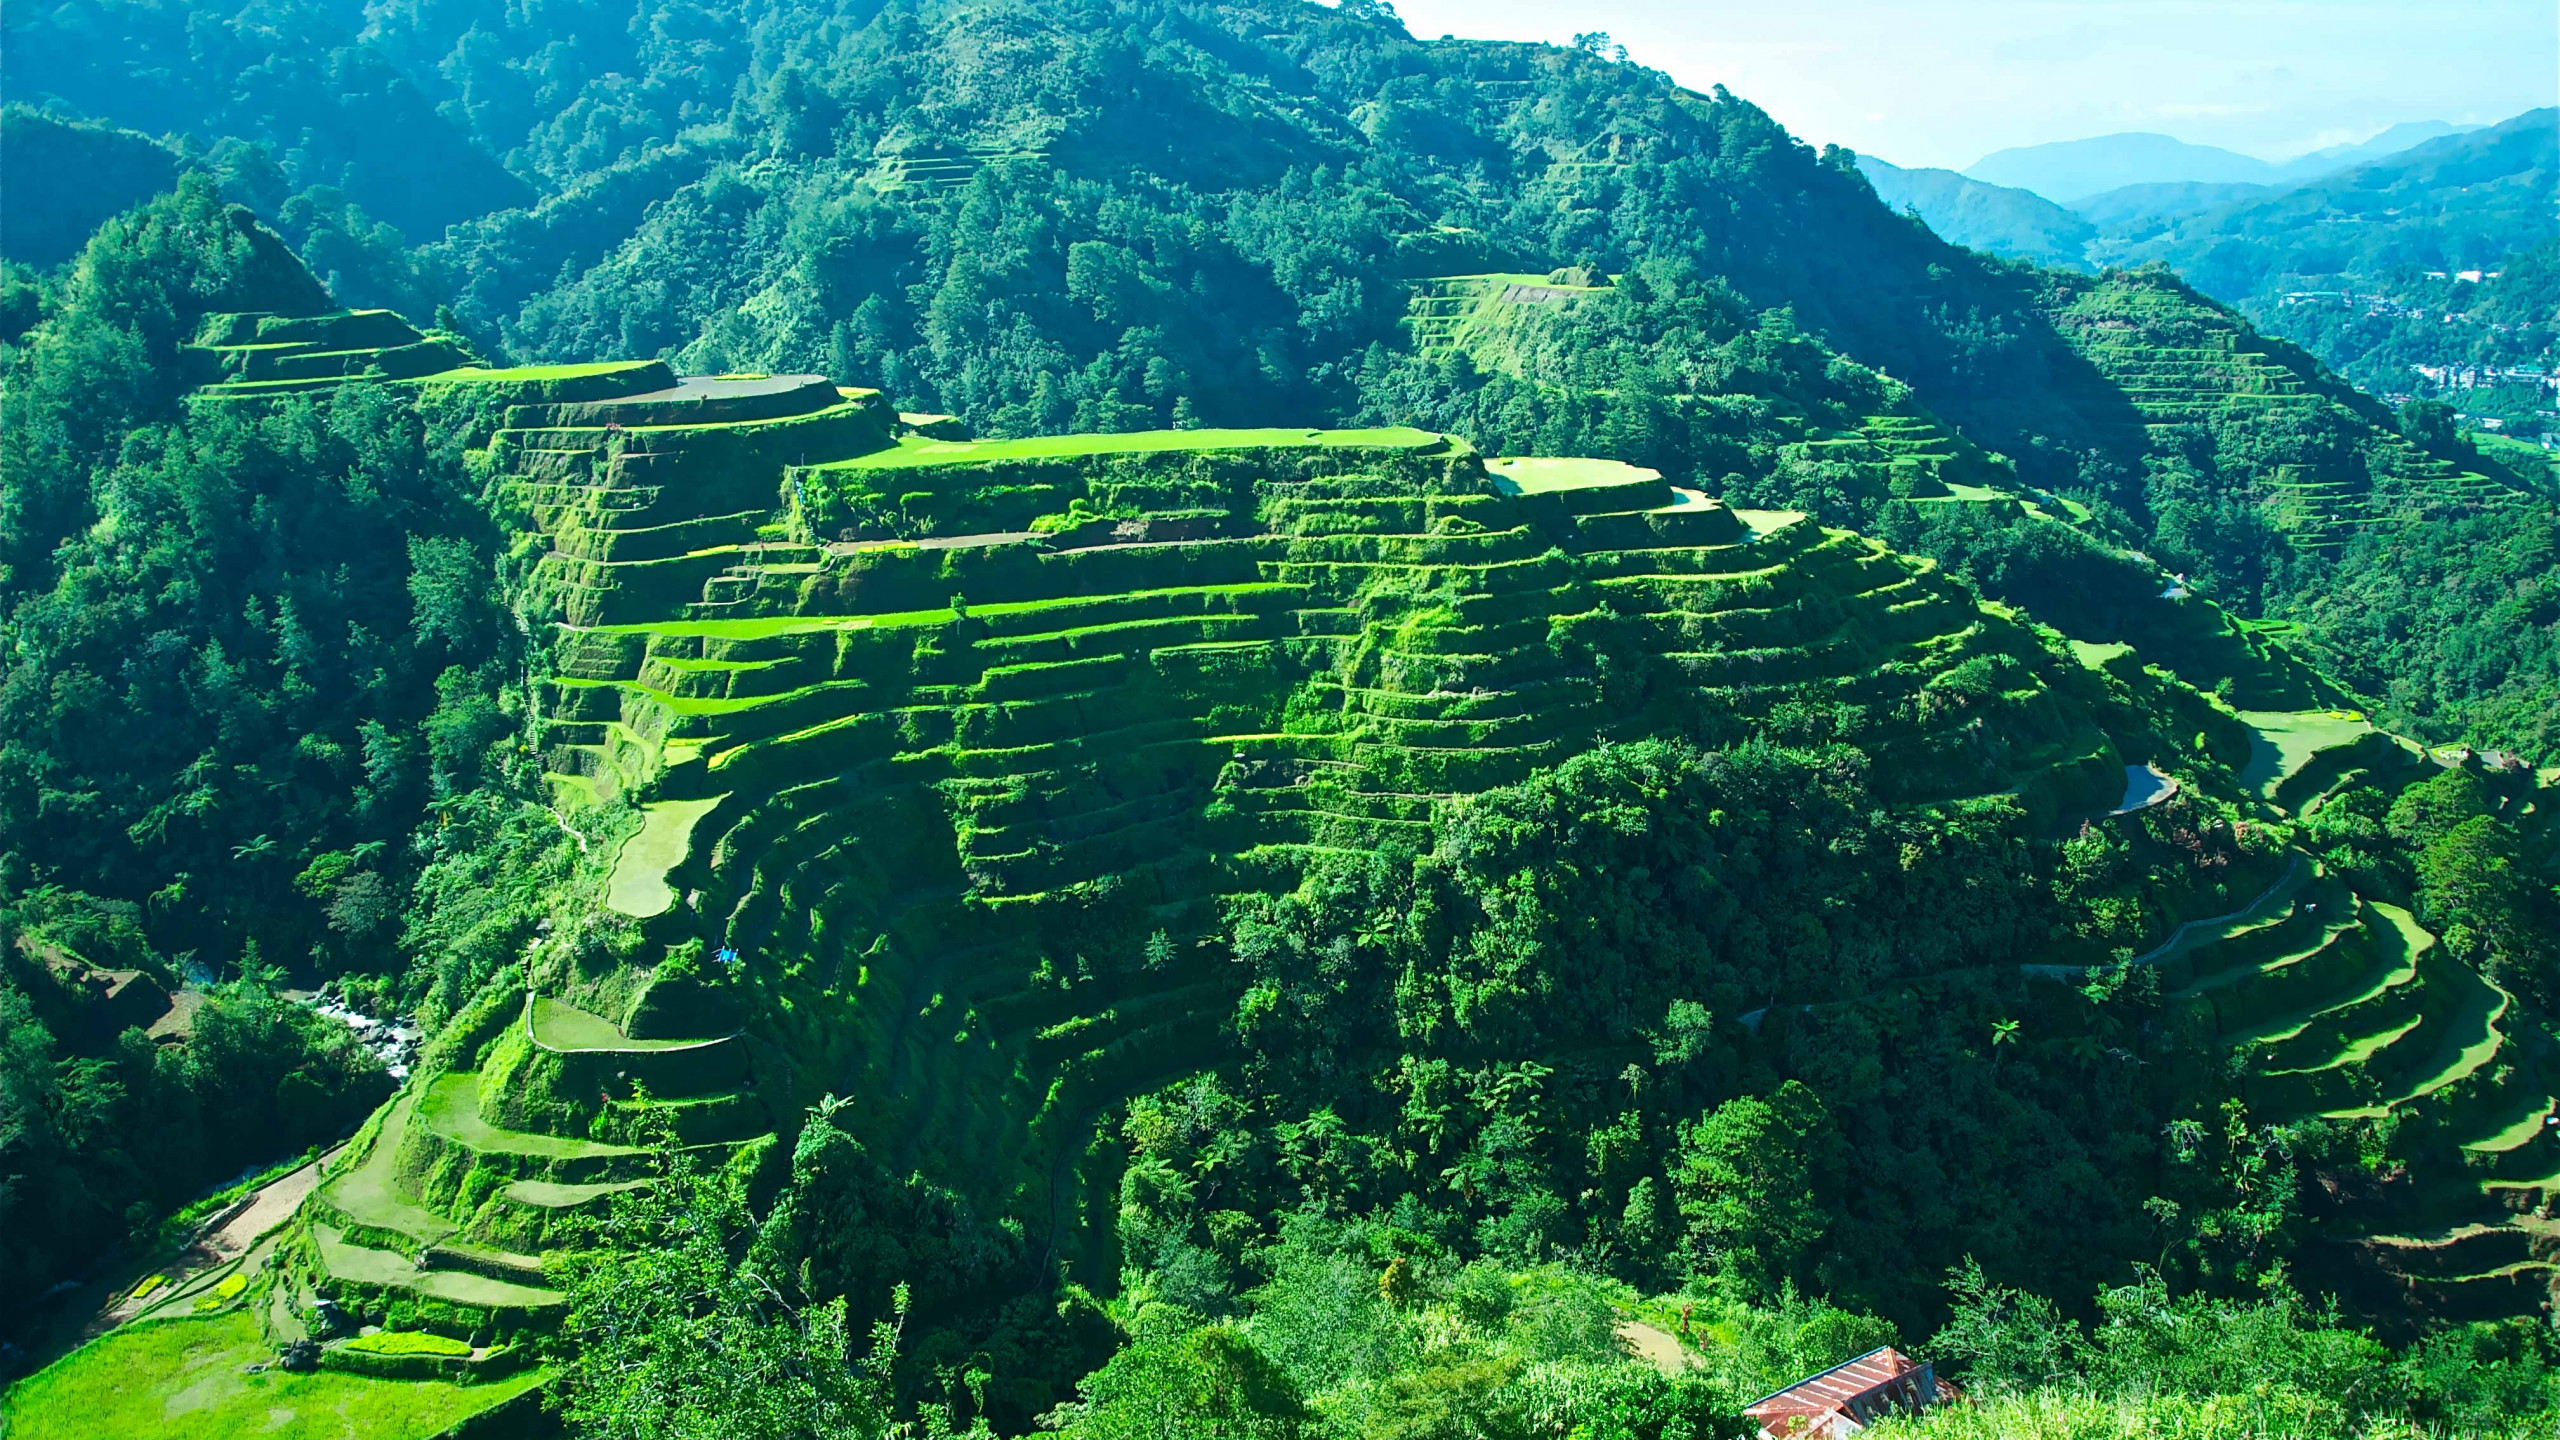 Wallpaper Cropper - Banaue Rice Terraces 2560 by 1440 (990)